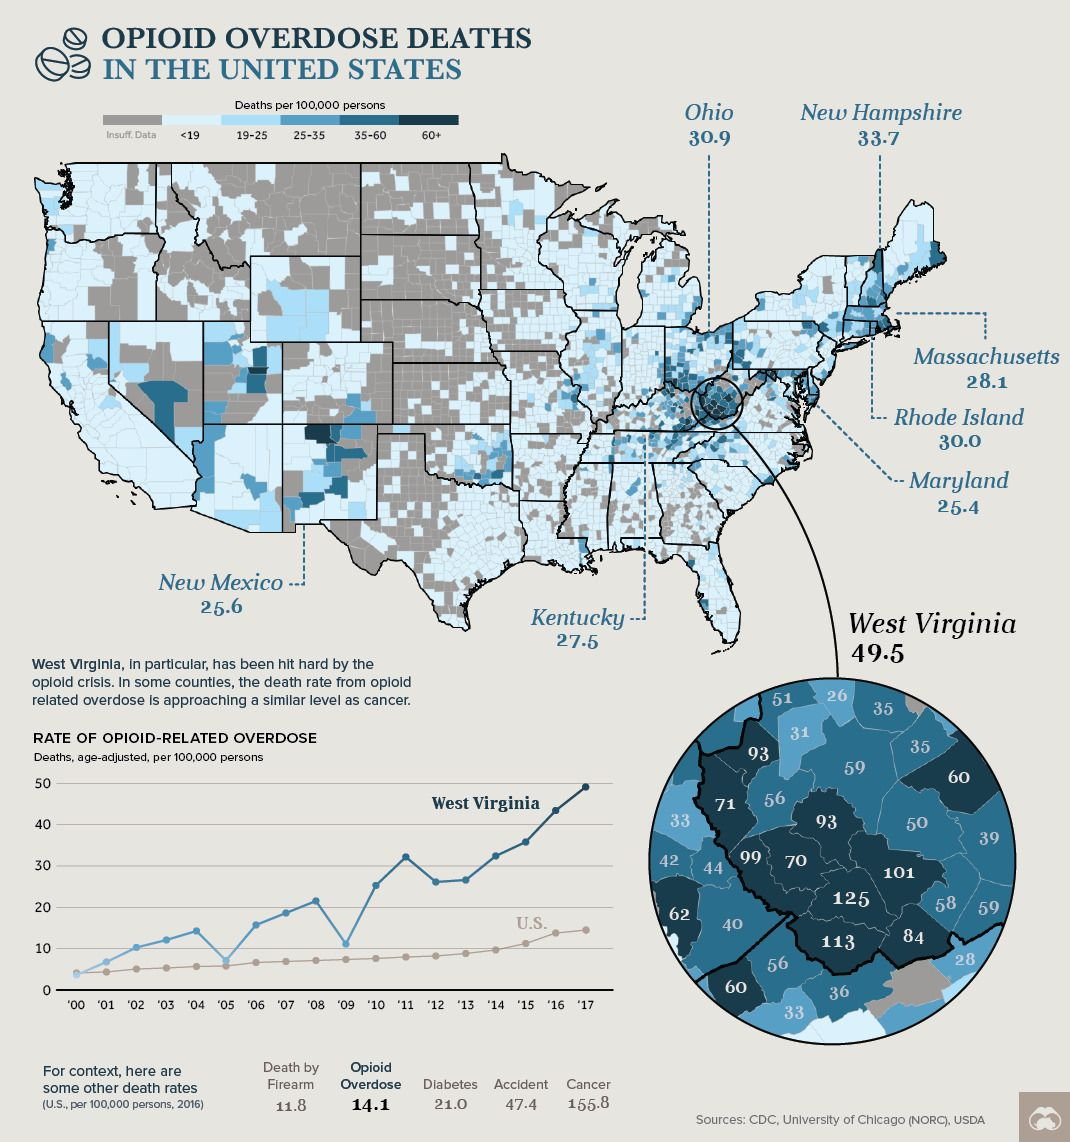 Opioid overdose deaths in the United States | United States